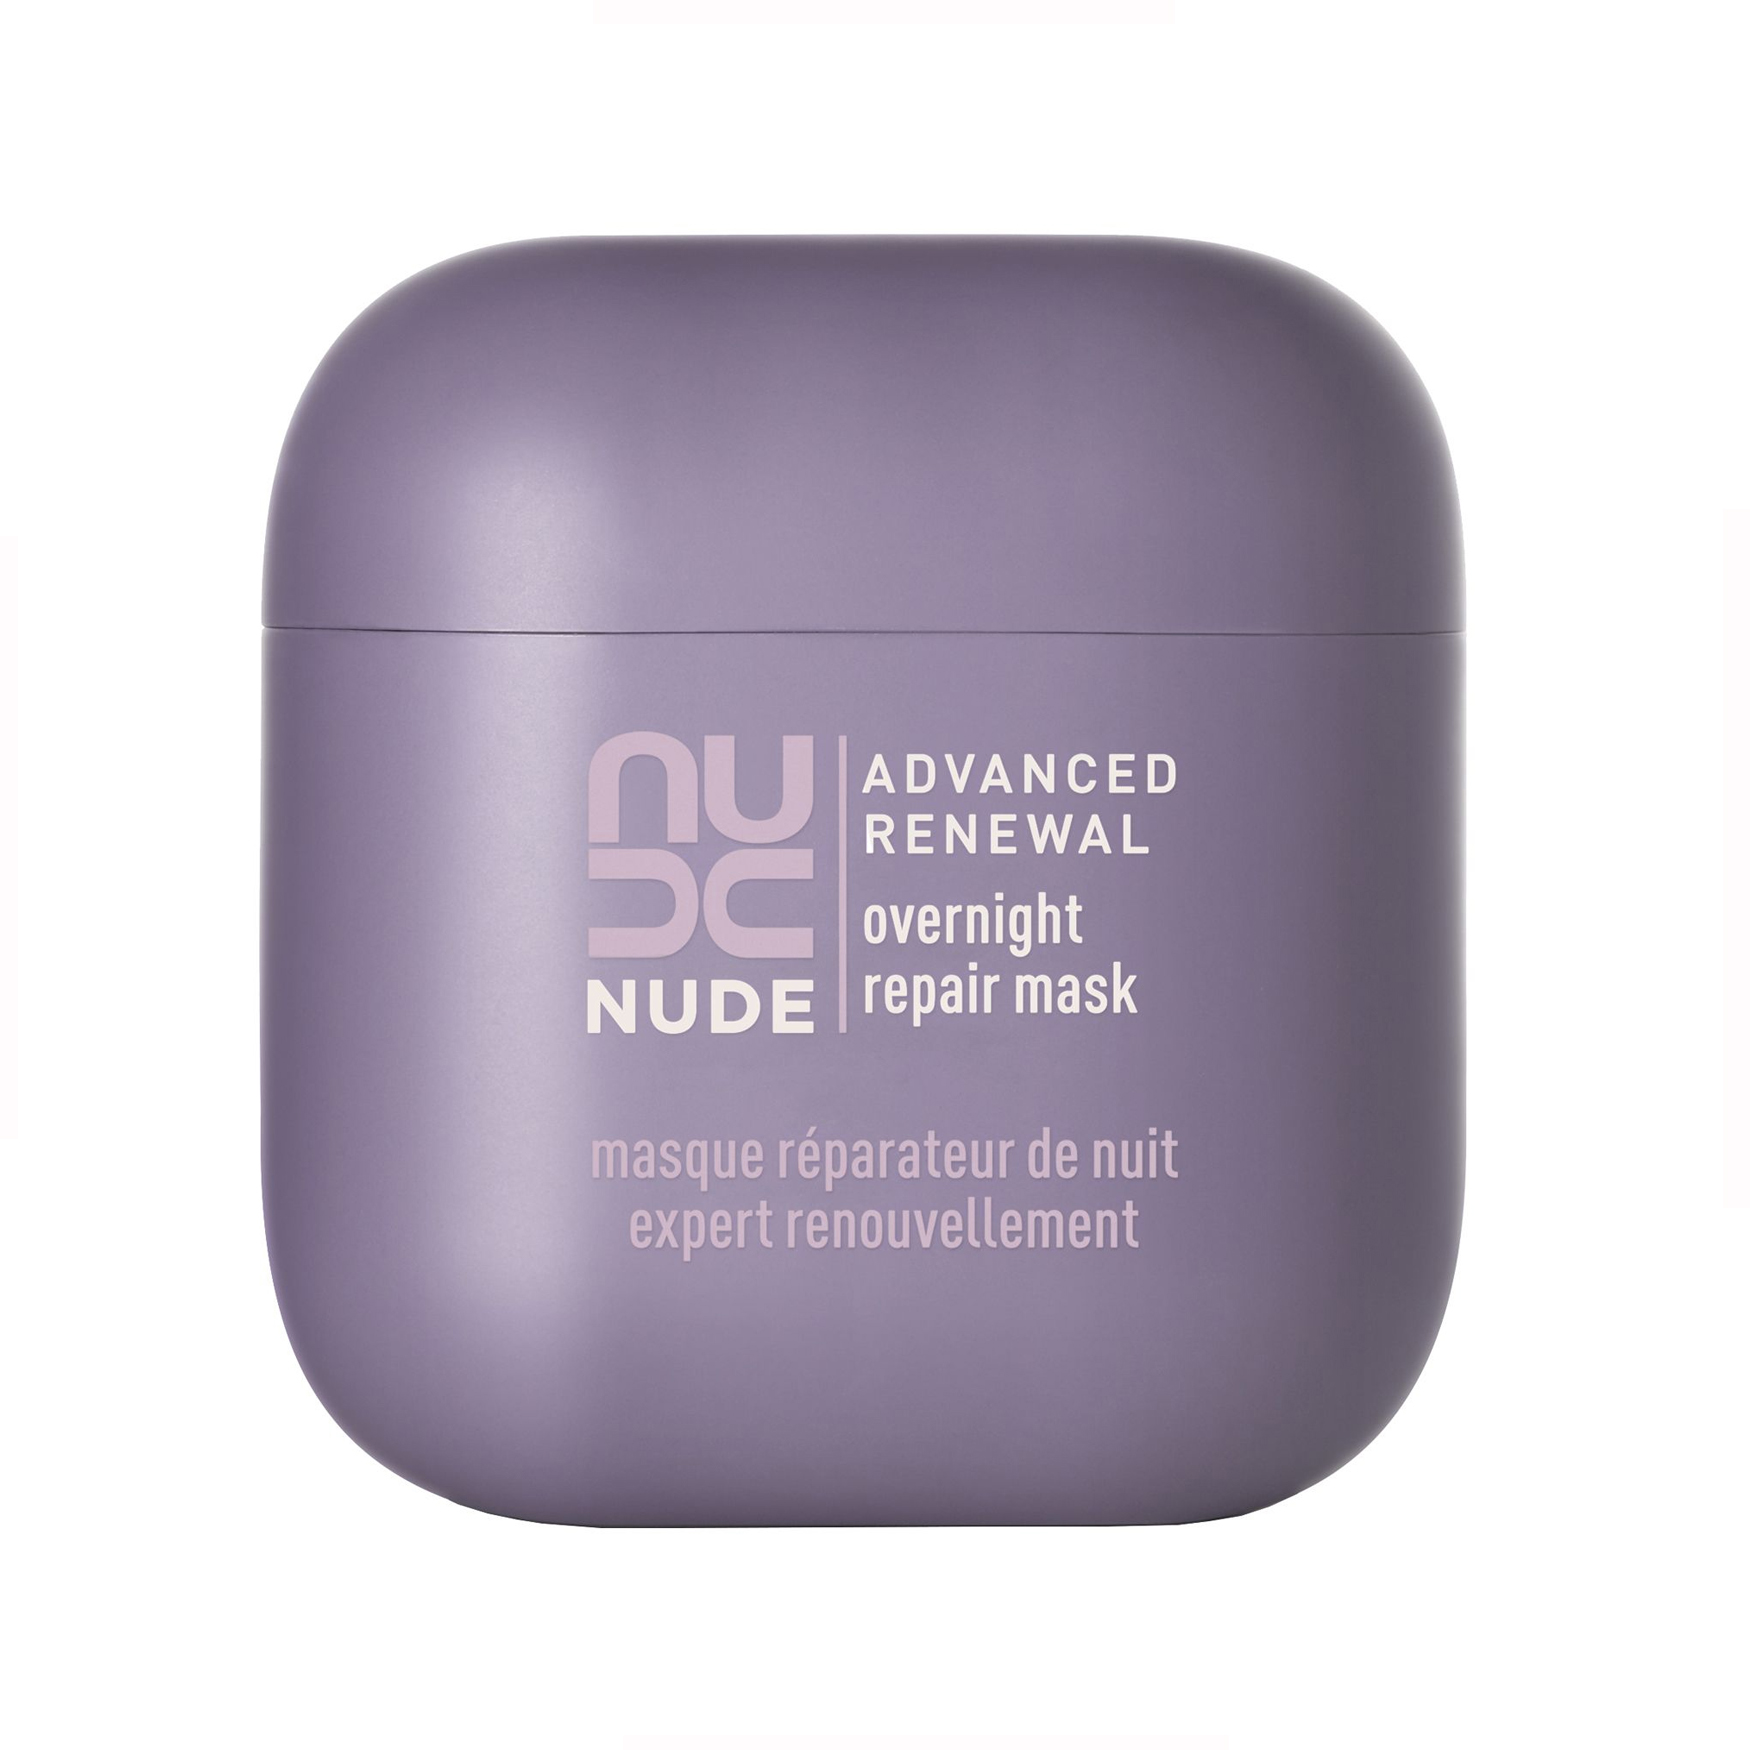 NUDE SKINCARE_Advanced Renewal Overnight Repair Mask (Mecca Cosmetica)